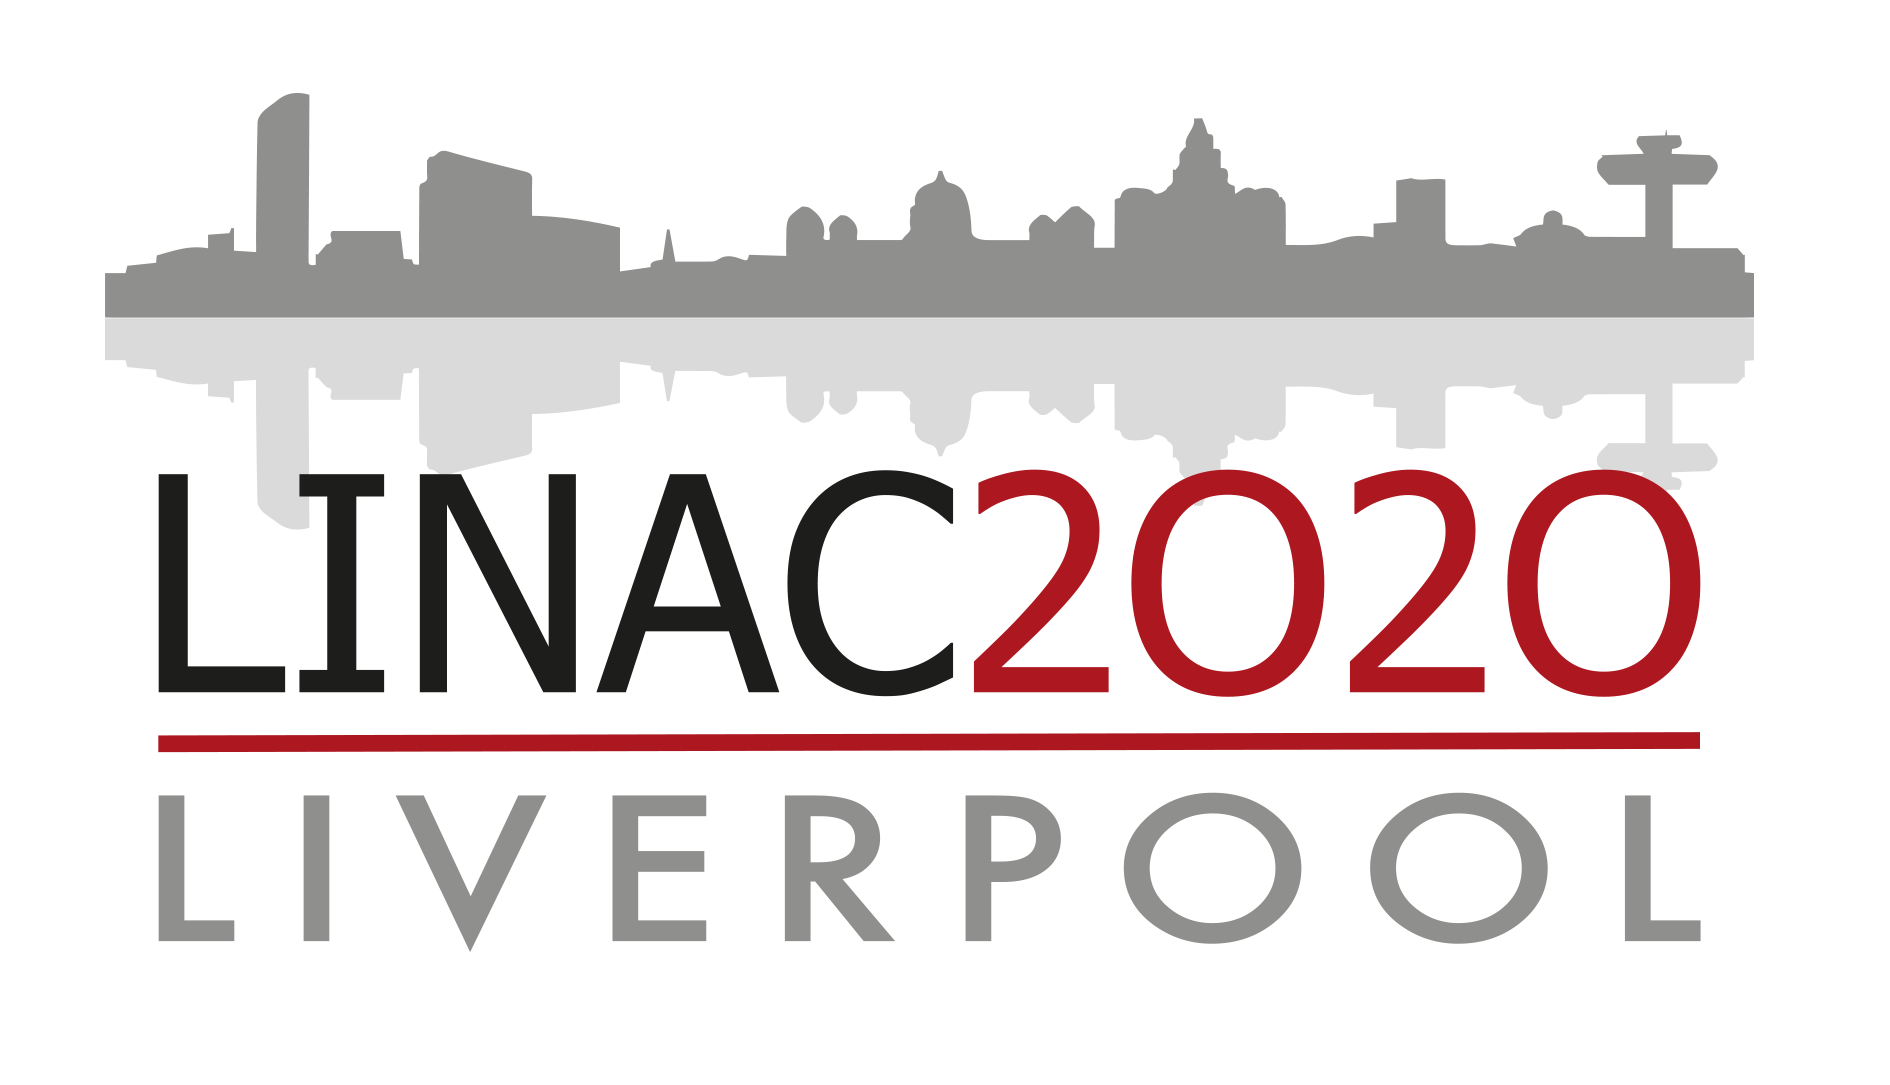 30th International Linear Accelerator Conference 2020